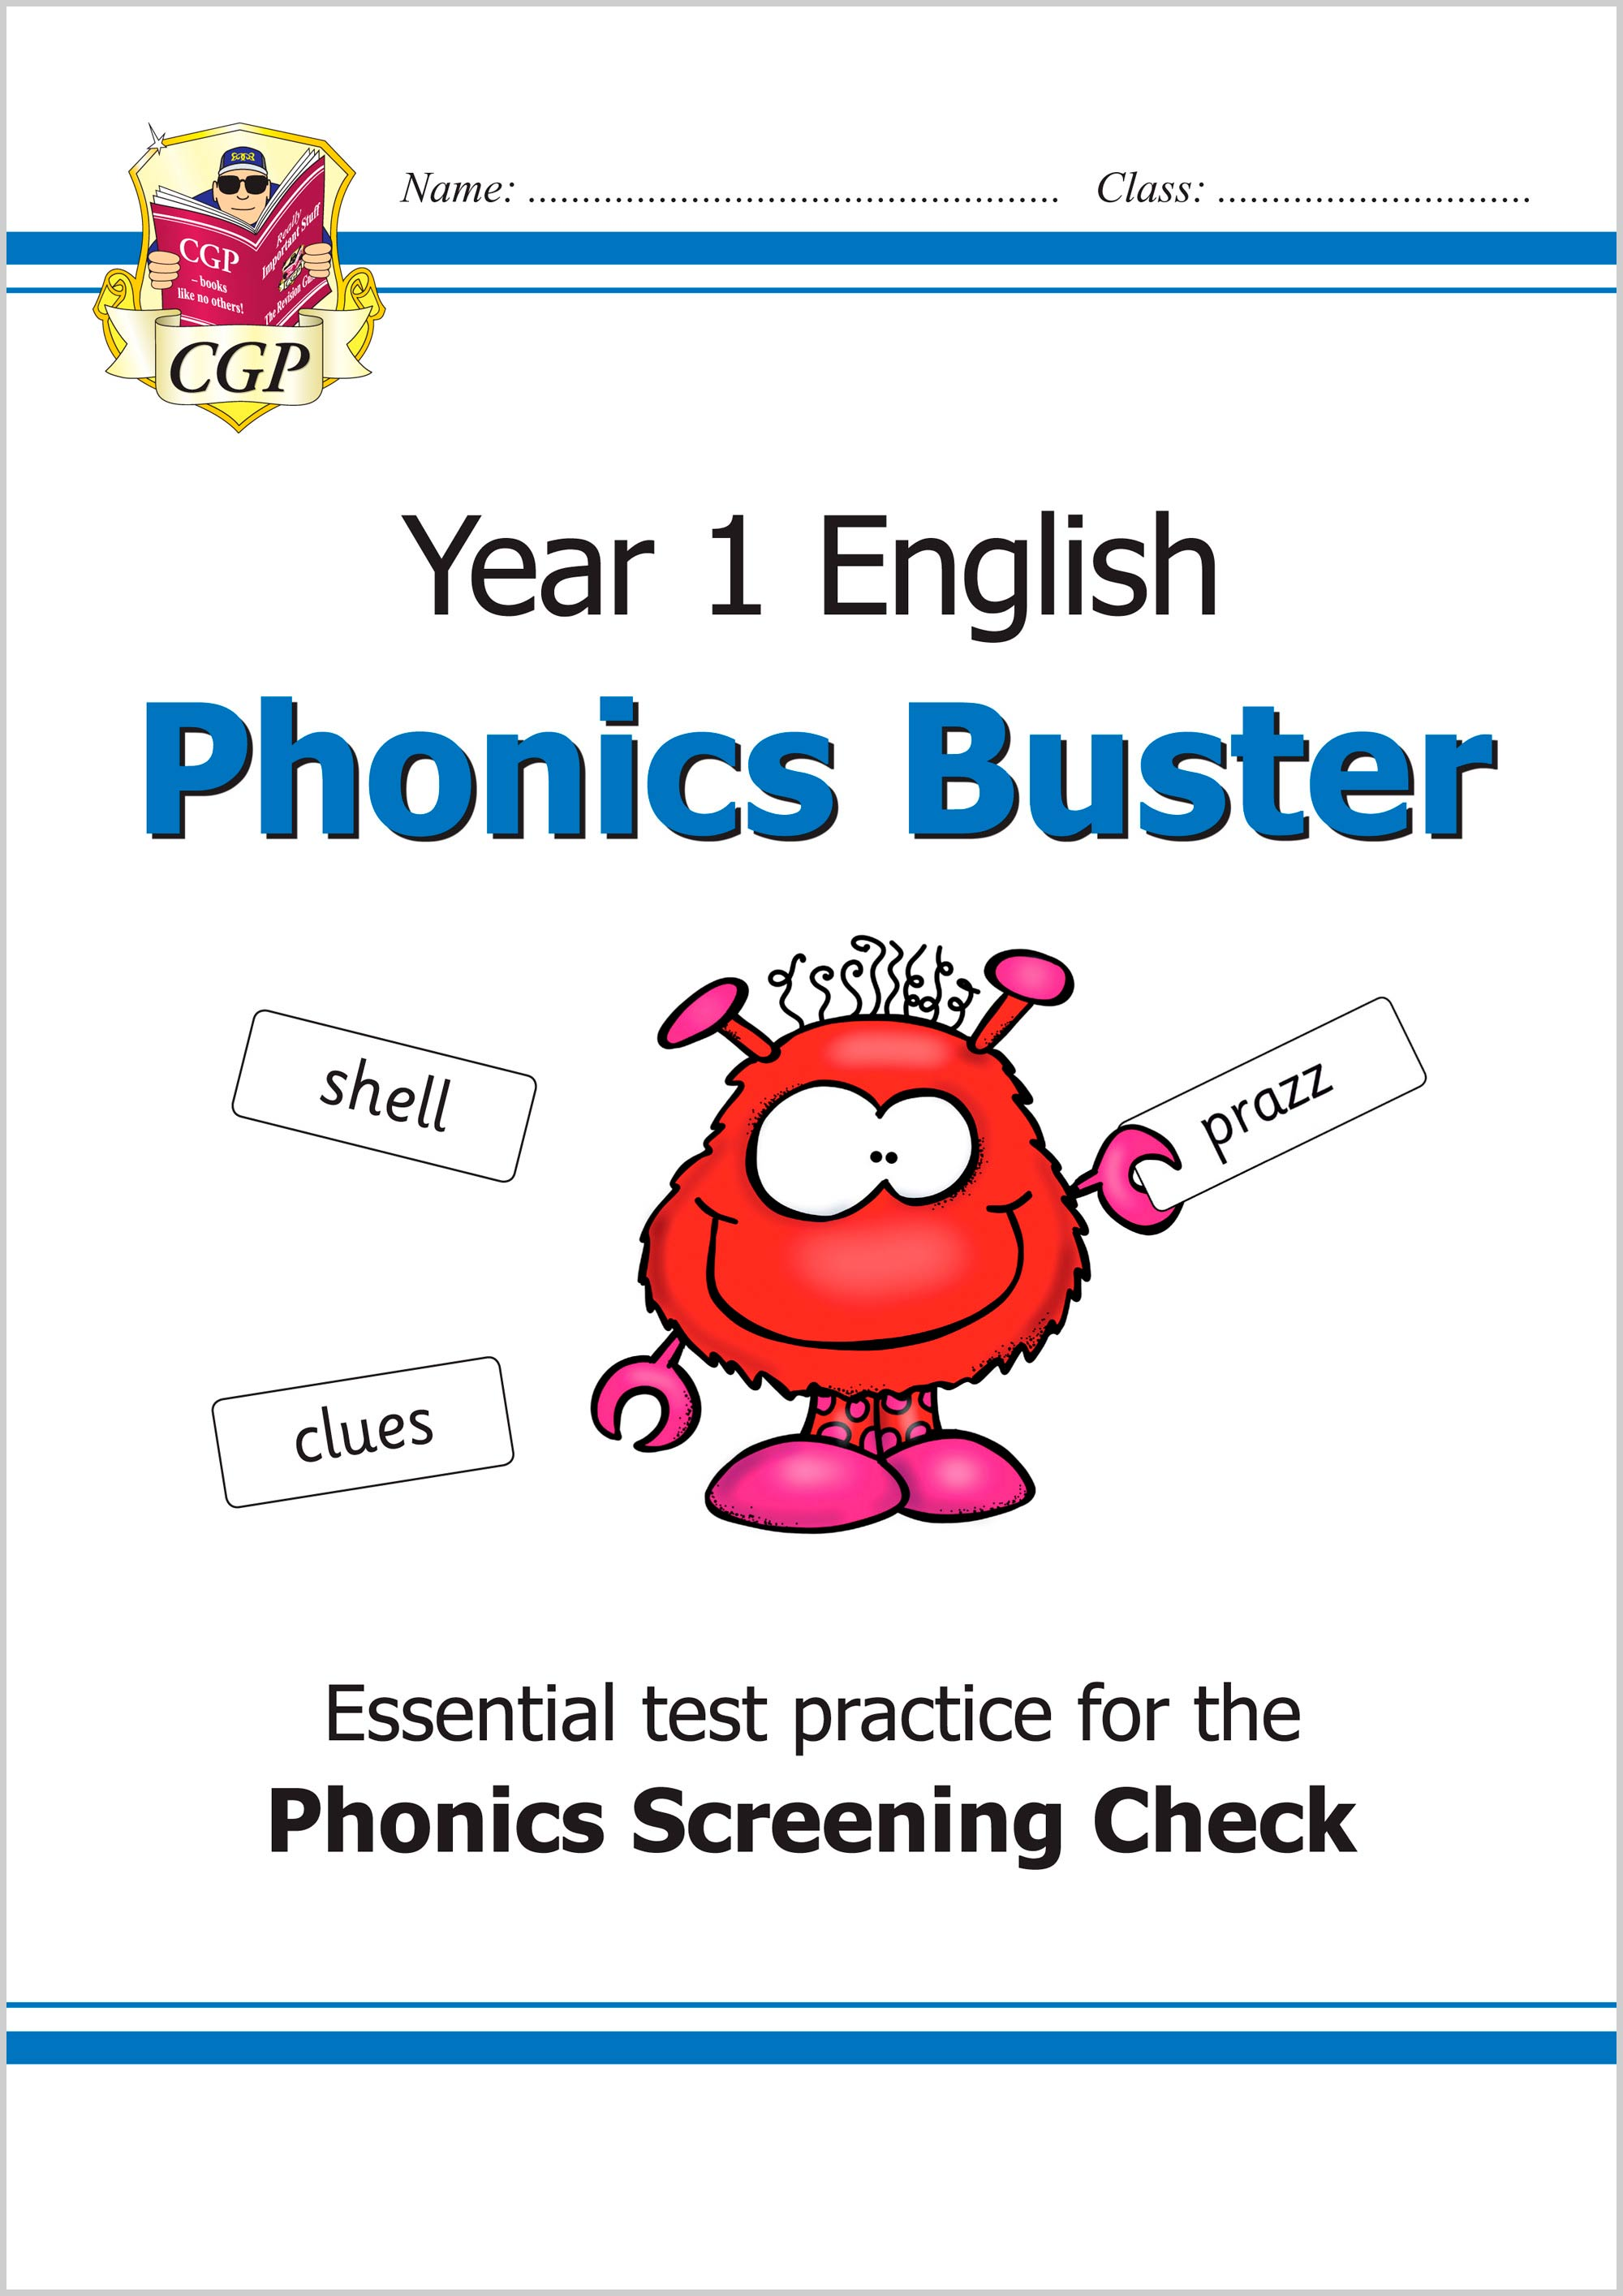 E1O11 - KS1 English Phonics Buster - for the Phonics Screening Check in Year 1